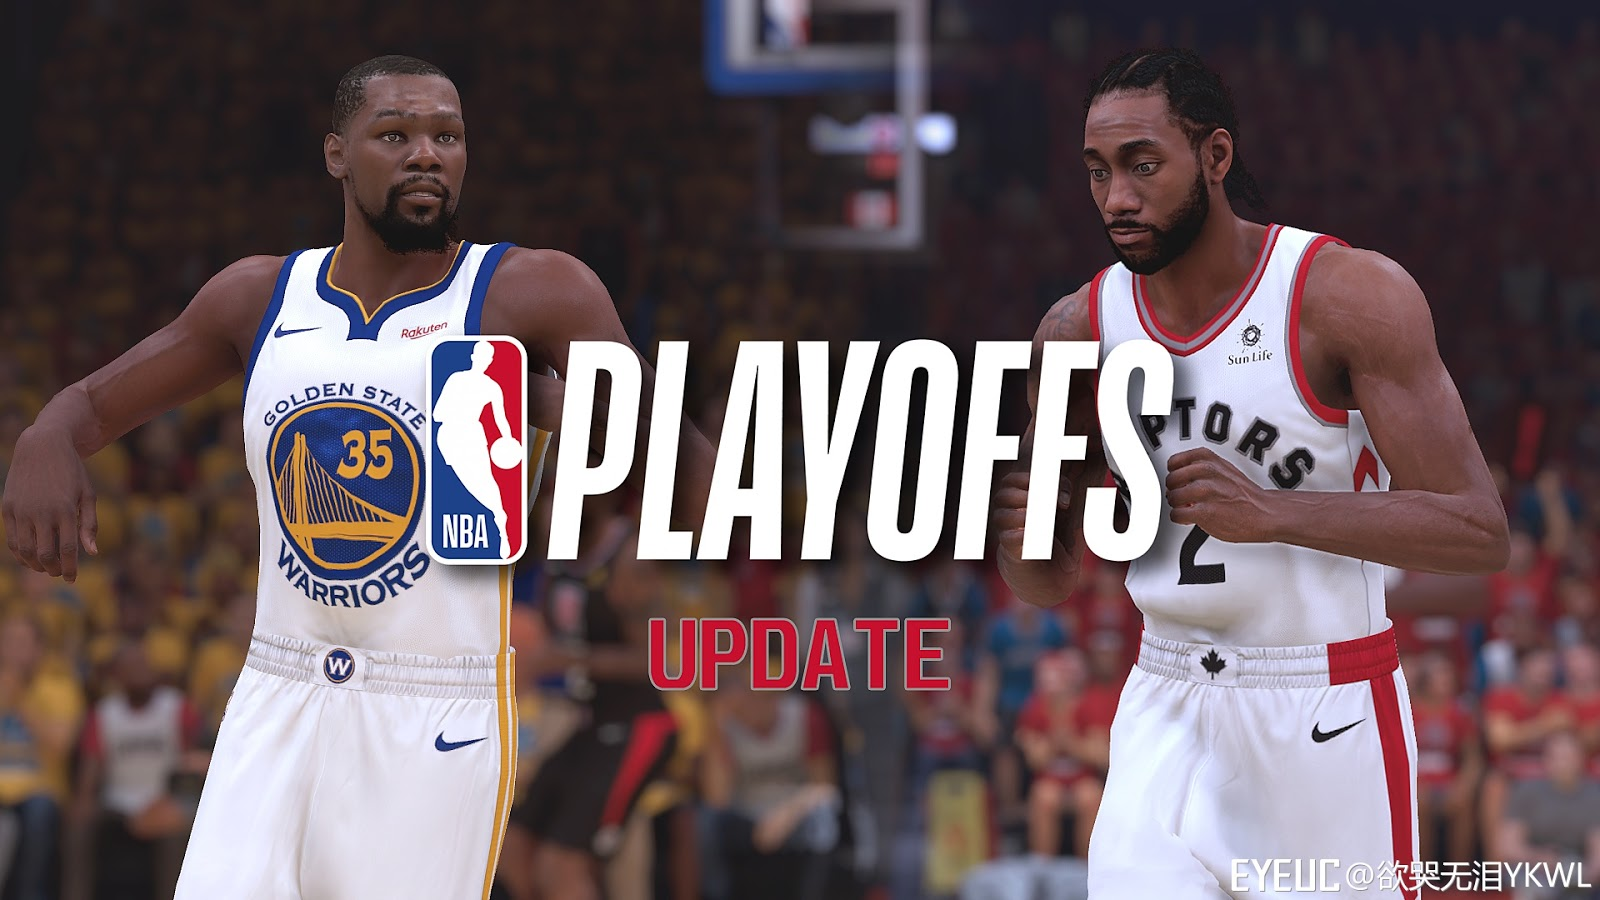 016b67105e3f NBA 2K19 - Realism Courts   Arenas Playoffs Update v3 (Raptors and ...